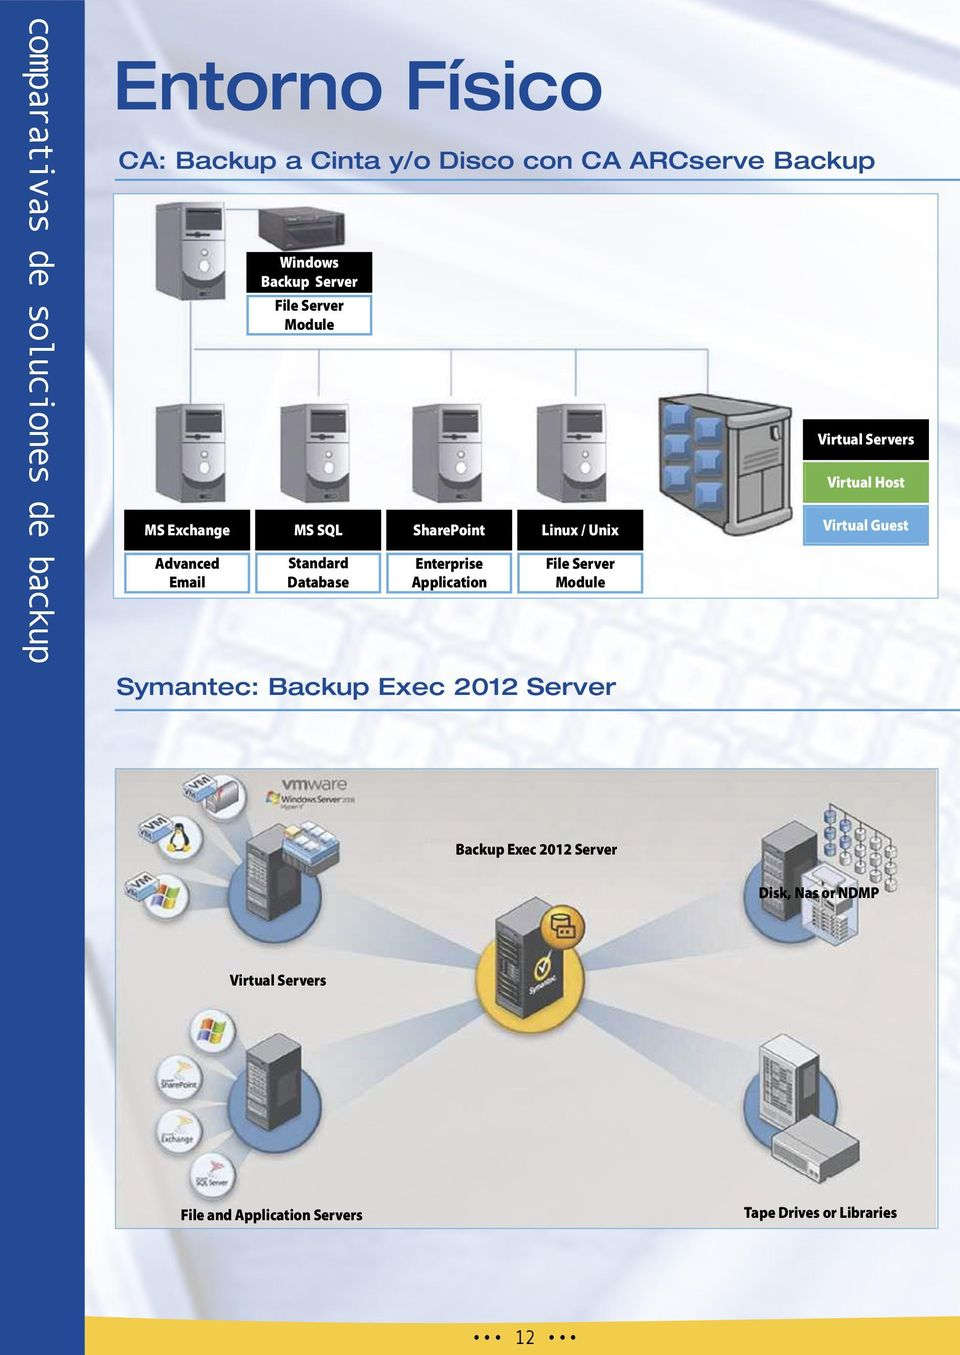 Application Linux / Unix File Server Module Symantec: Backup Exec 2012 Server Virtual Servers Virtual Host